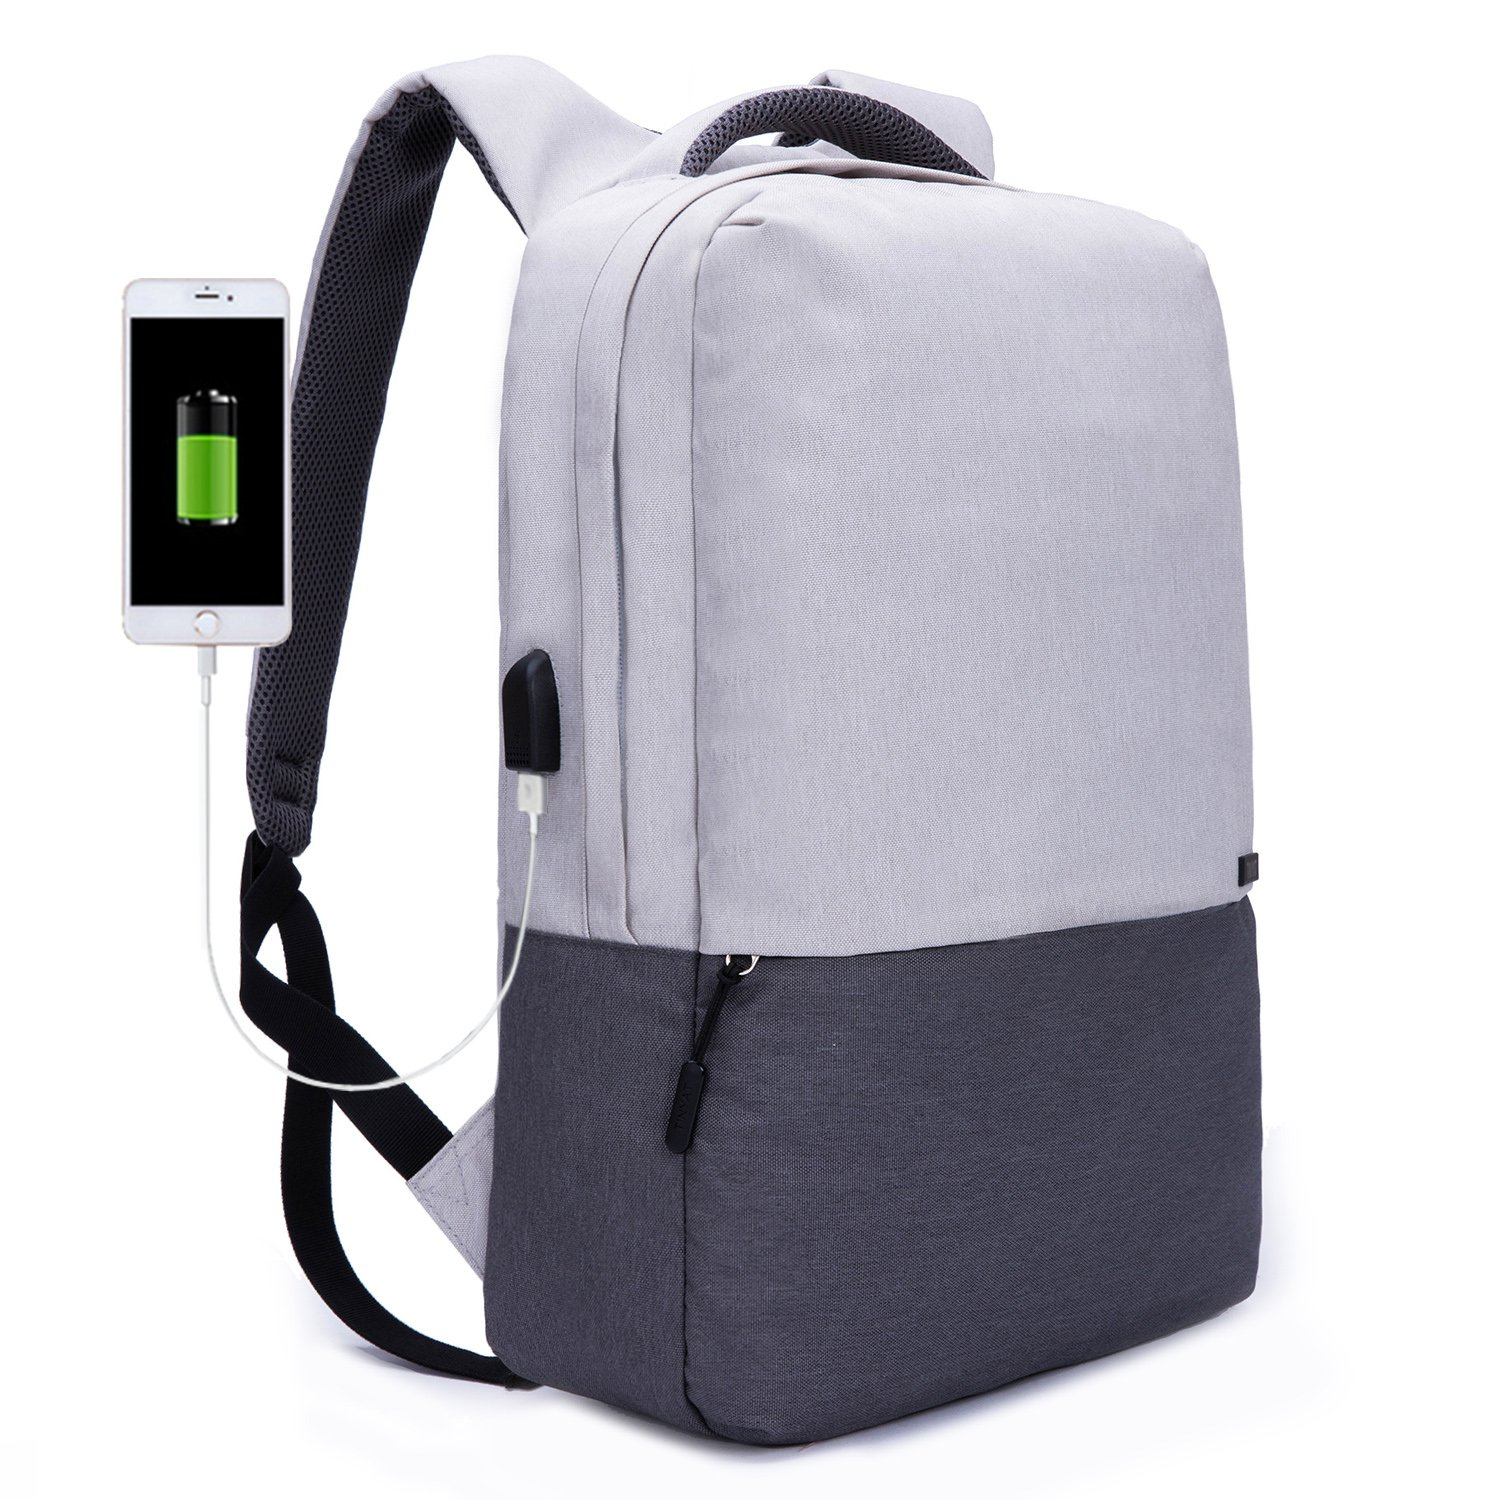 TINYAT Travel Backpack with USB Charging Port Durable Water Resistant Computer Bag Fits up to 15.6-Inch Laptop Bookbag T810